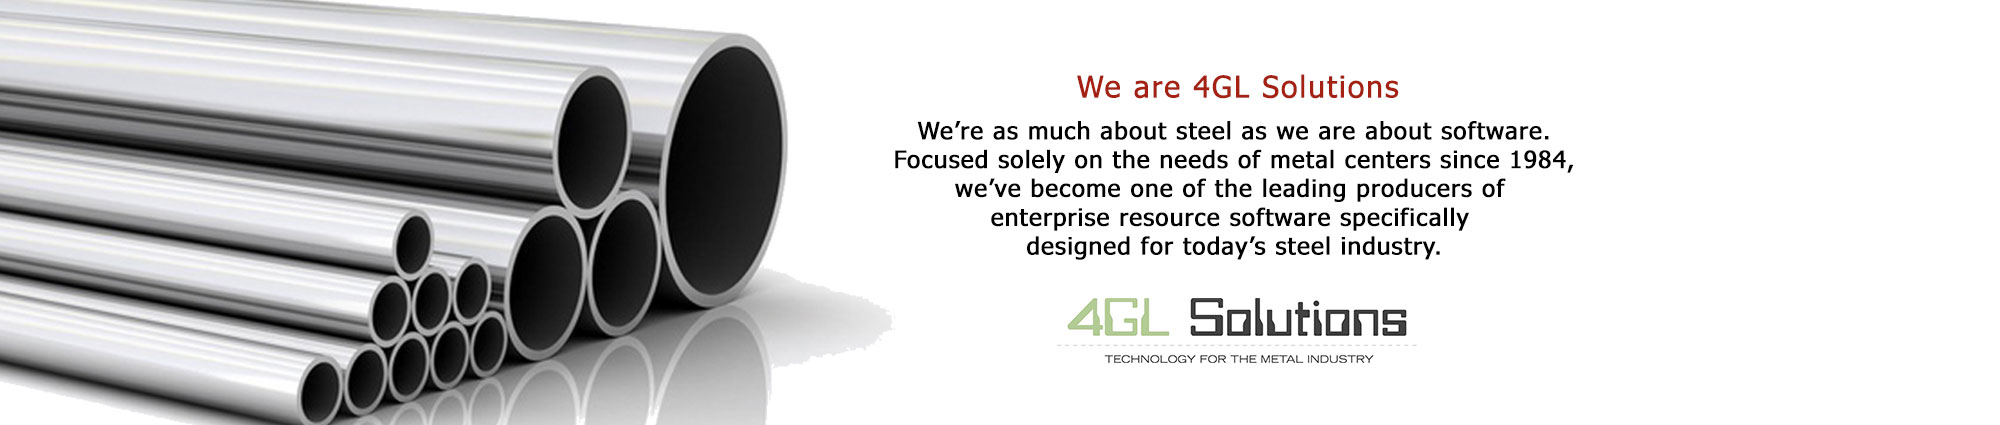 We are 4GL Solutions Slide